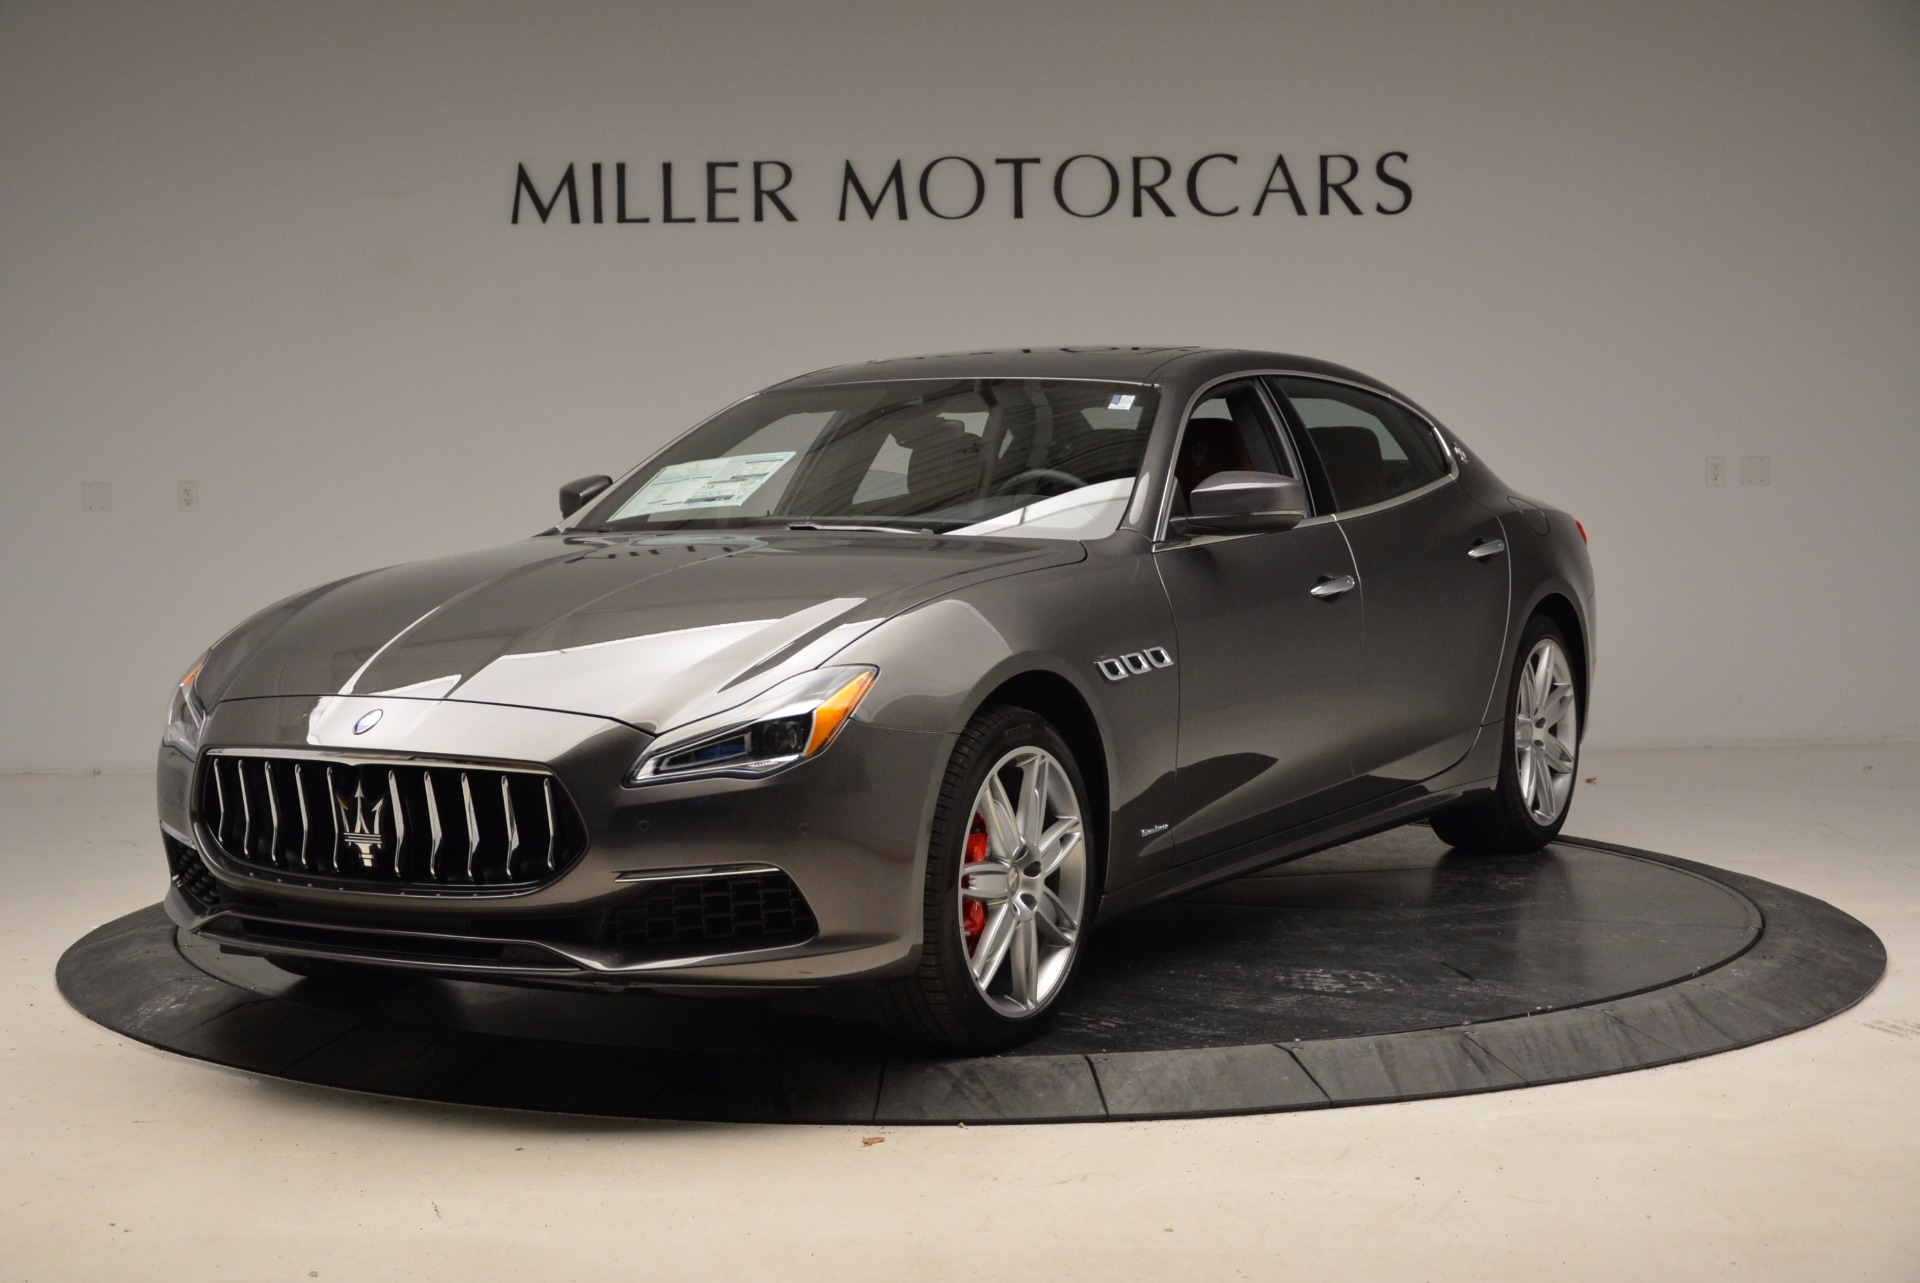 New 2018 Maserati Quattroporte S Q4 GranLusso For Sale 0 In Greenwich, CT